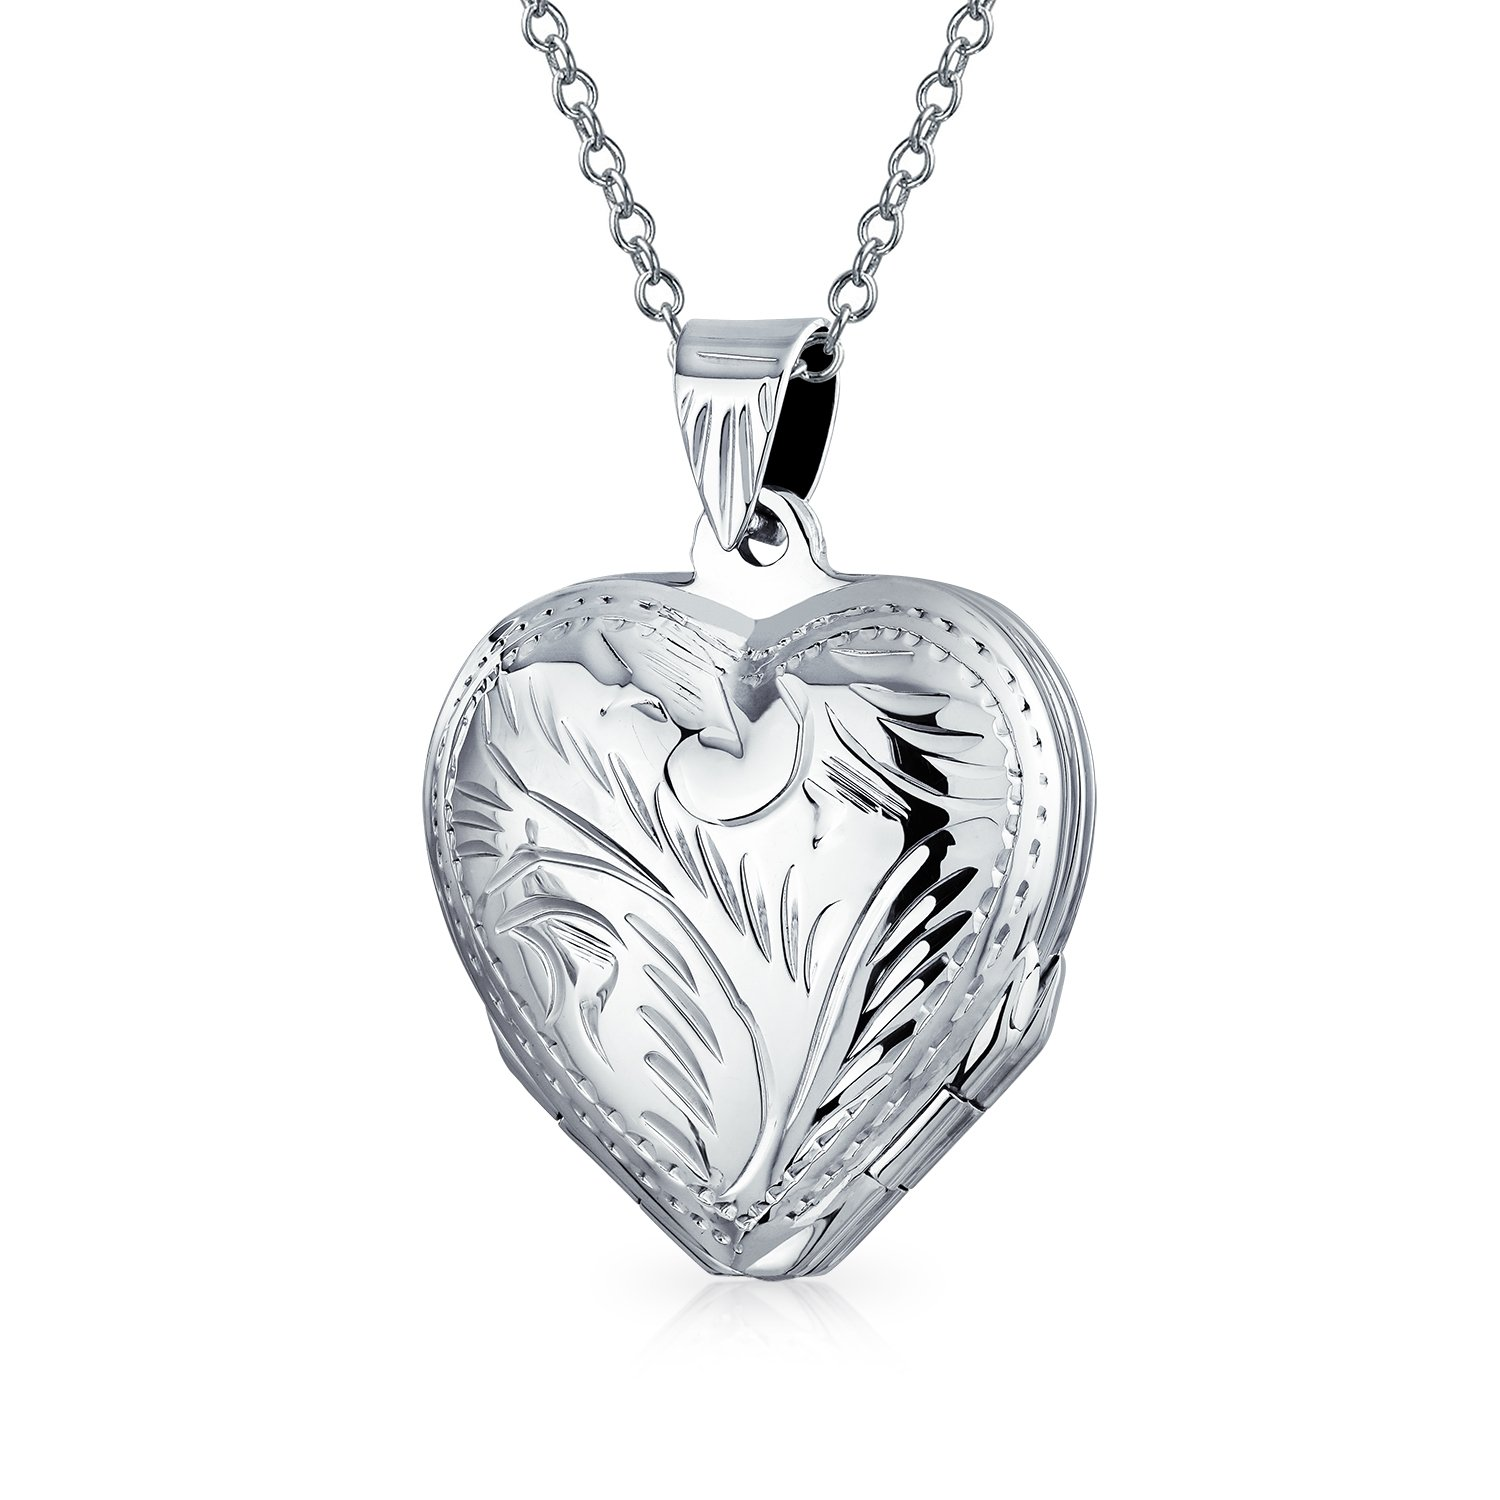 Etched Four Way Heart Shaped Locket Pendant Sterling Silver 18 Inches